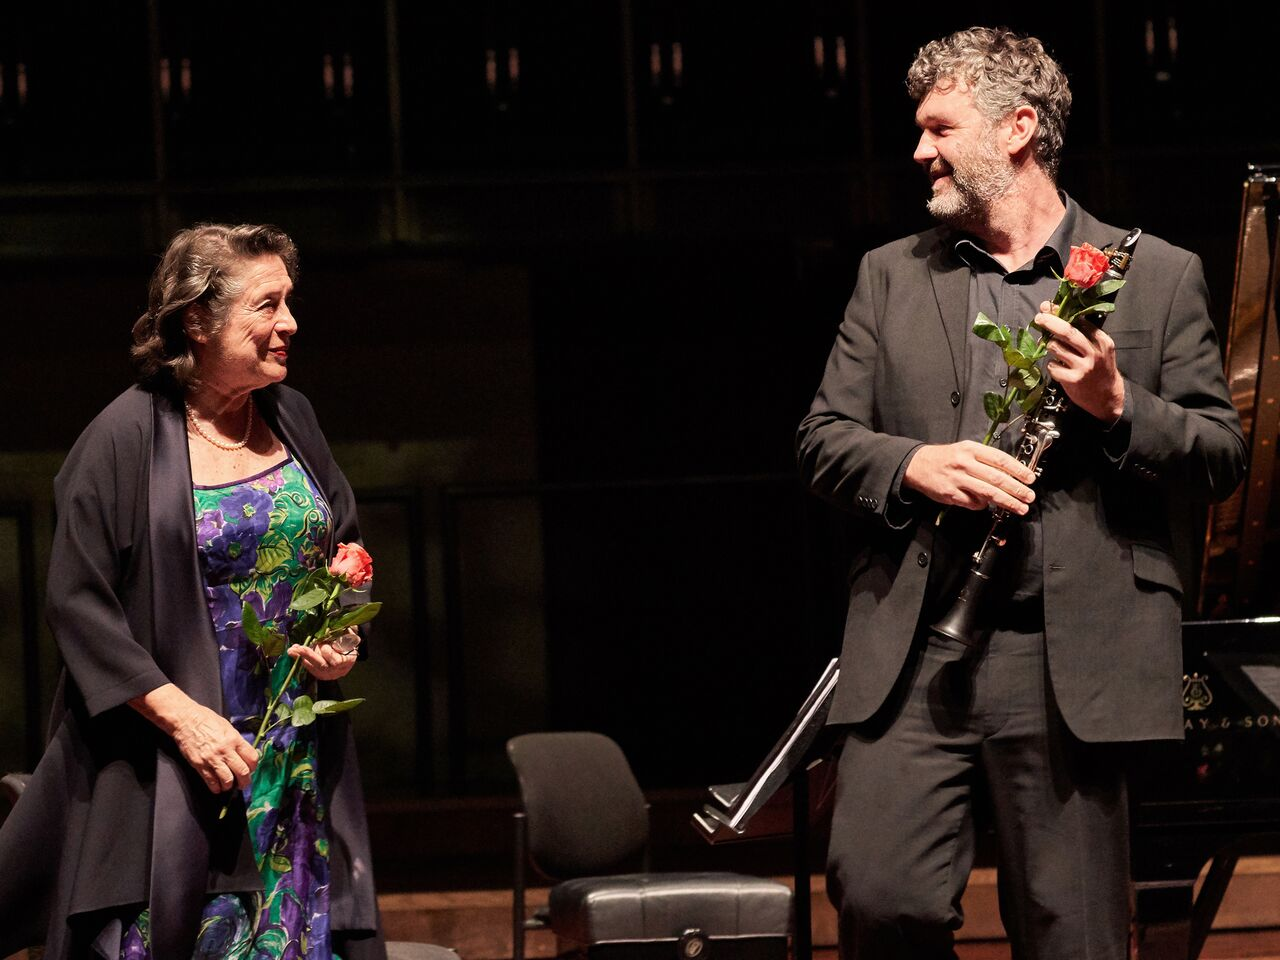 Elisabeth Leonskaja and Matt Hunt